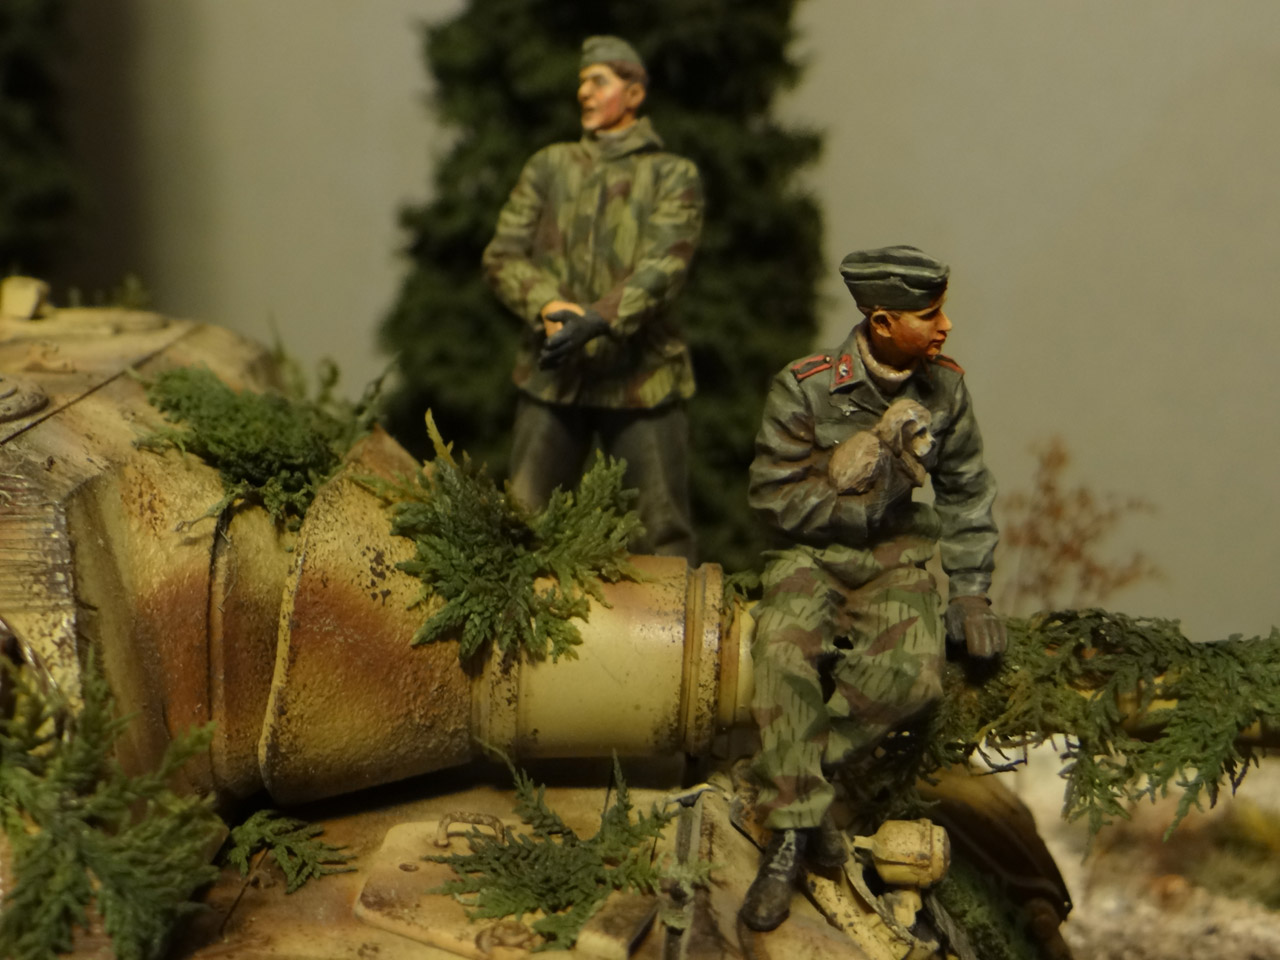 Dioramas and Vignettes: The Western Front, photo #15